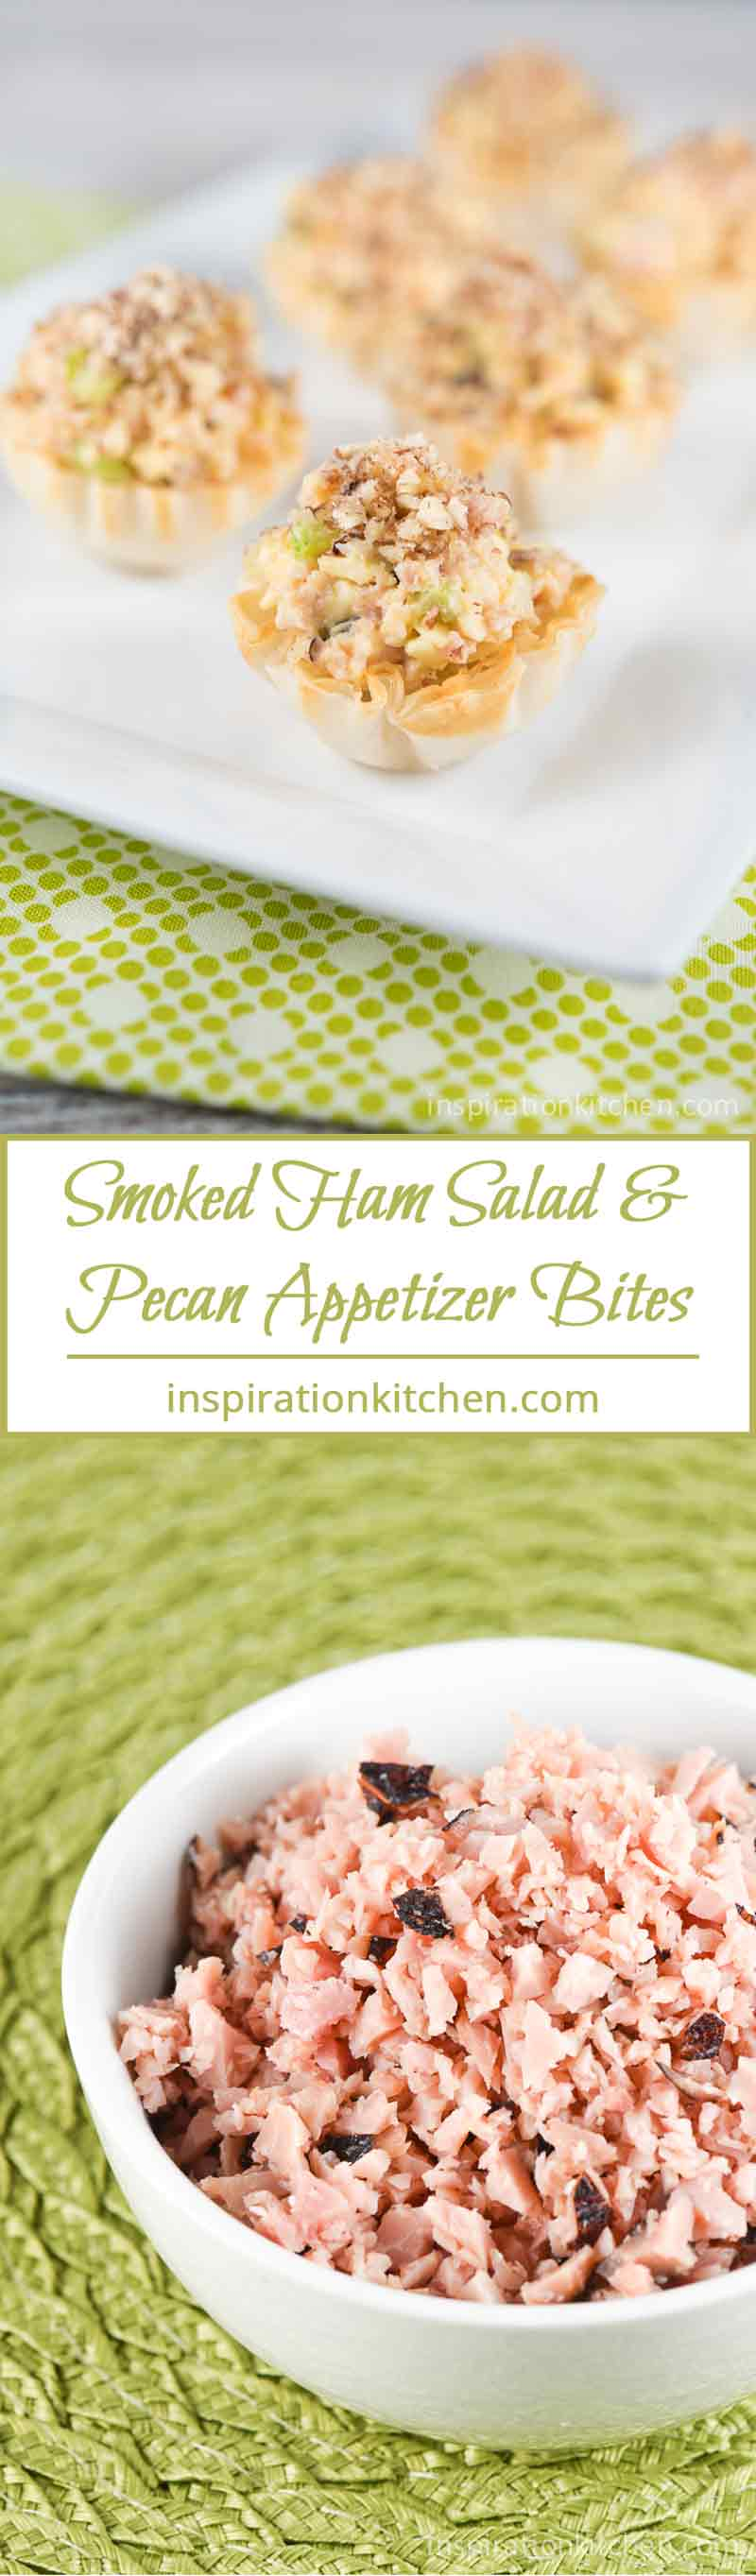 Smoked Ham Salad Pecan Appetizer Bites | Inspiration Kitchen